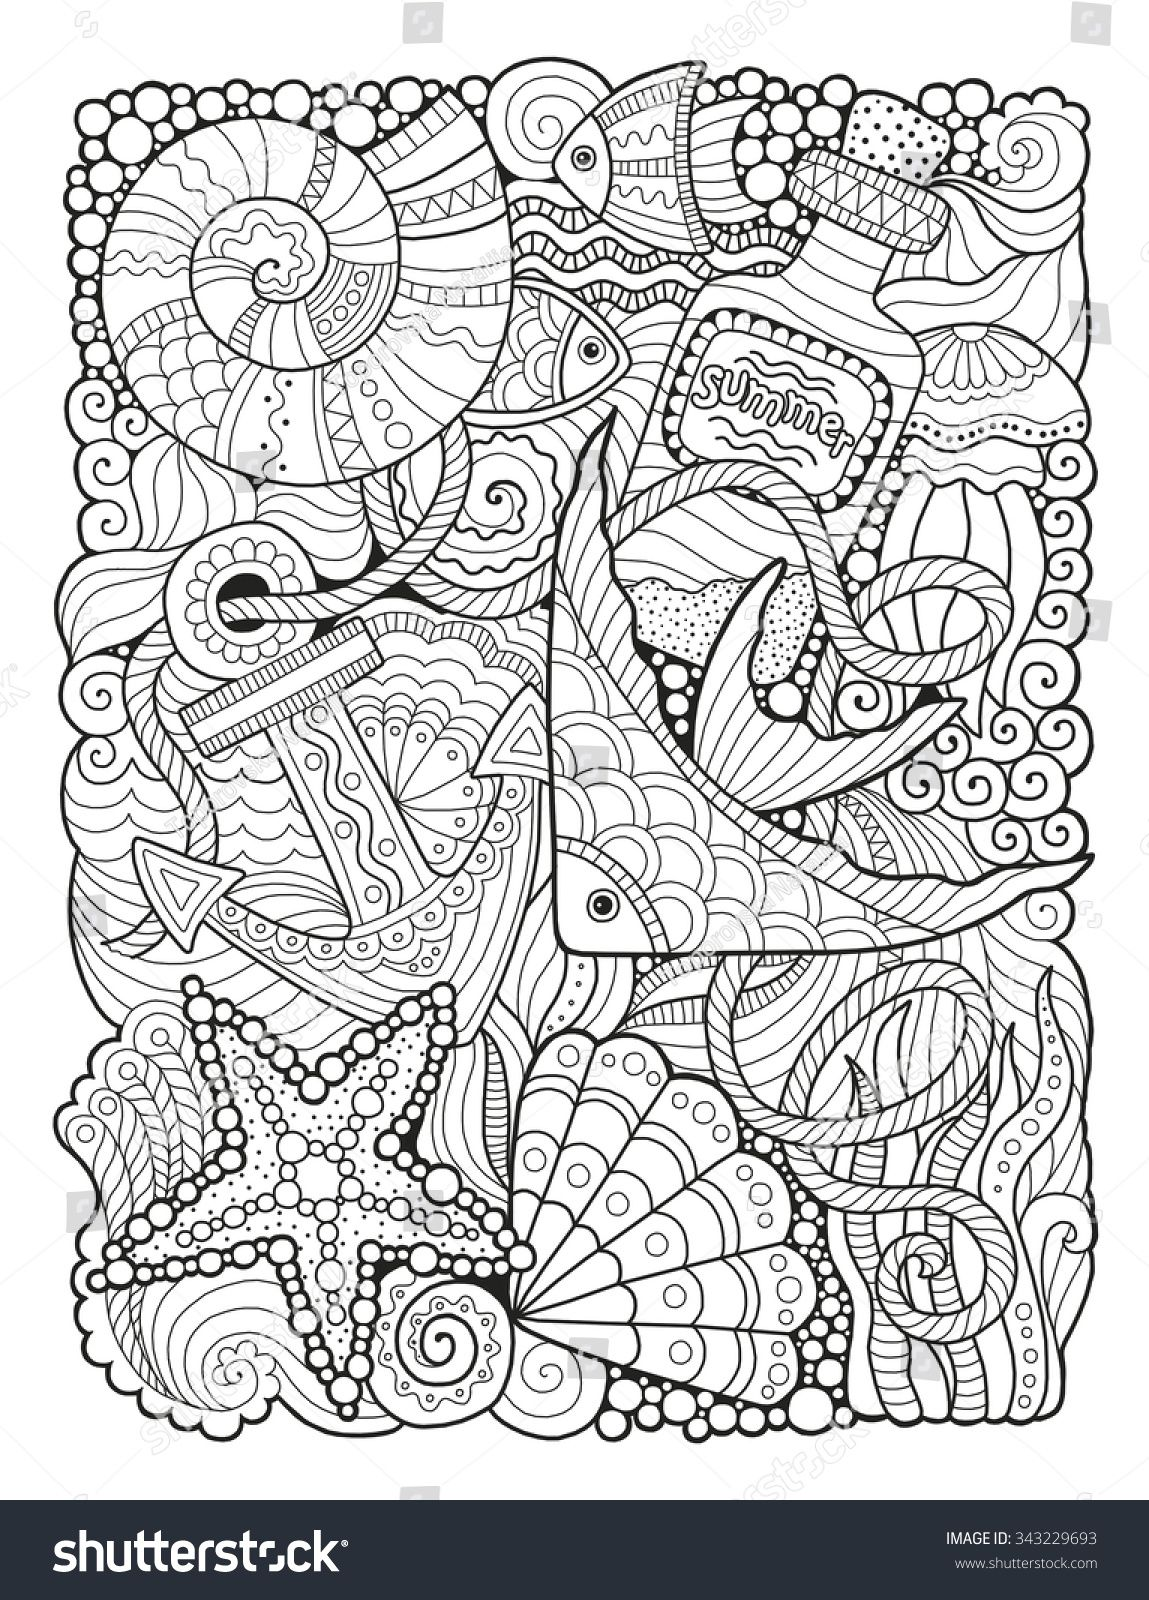 Coloriage Difficile Paques.Coloring Book For Adult Summers Sea Coloriage Animaux Pinterest